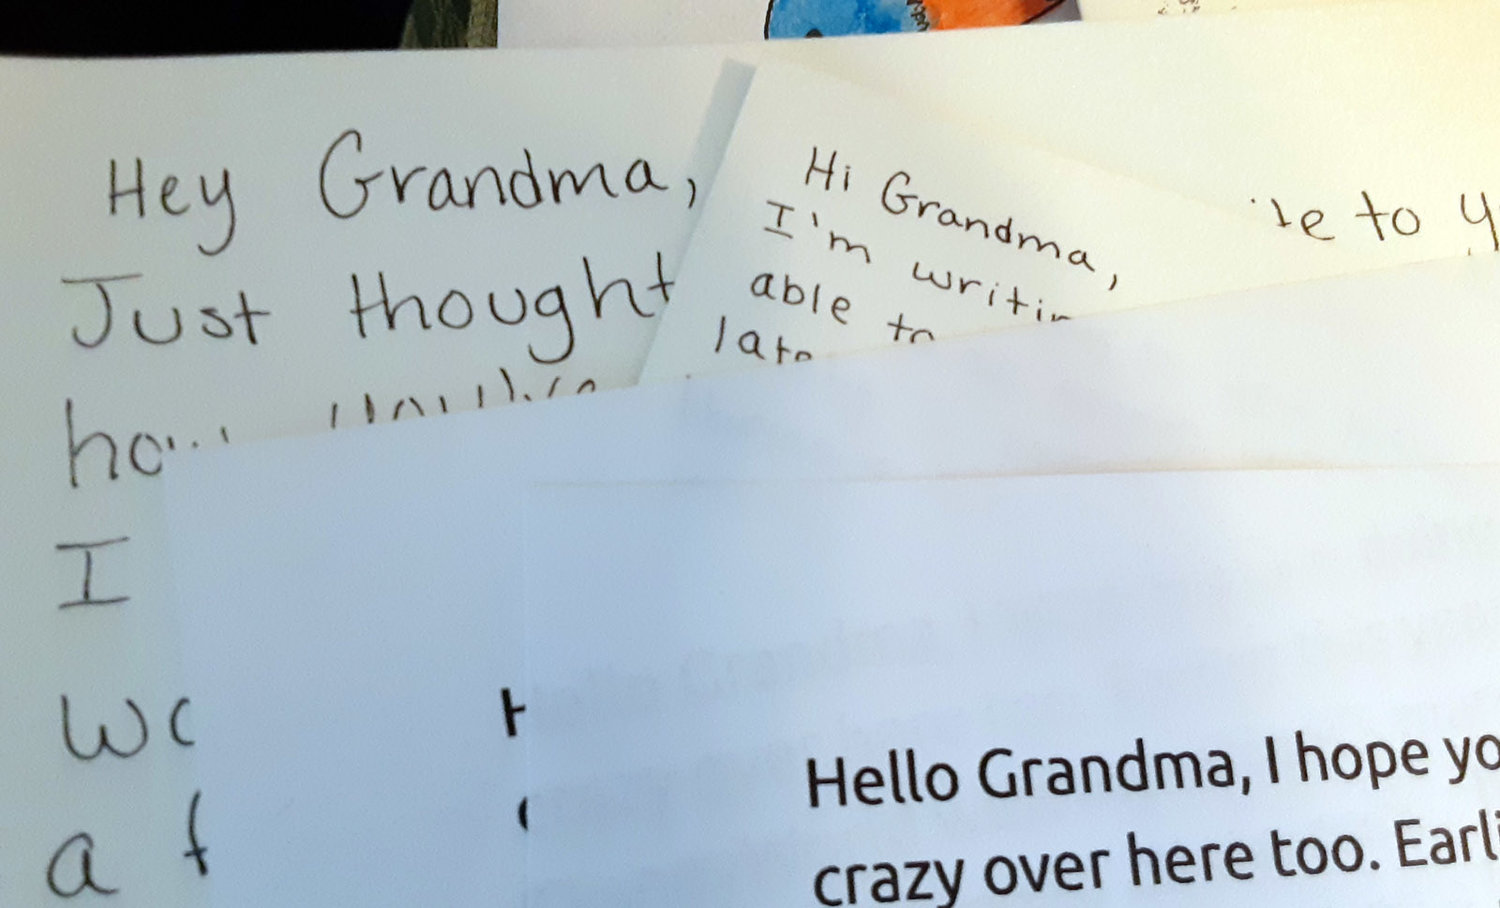 Dear Grandma, things are crazy here too, our kids wrote to their great grandmothers, both in nursing homes, and shared their quarantine experiences with them.